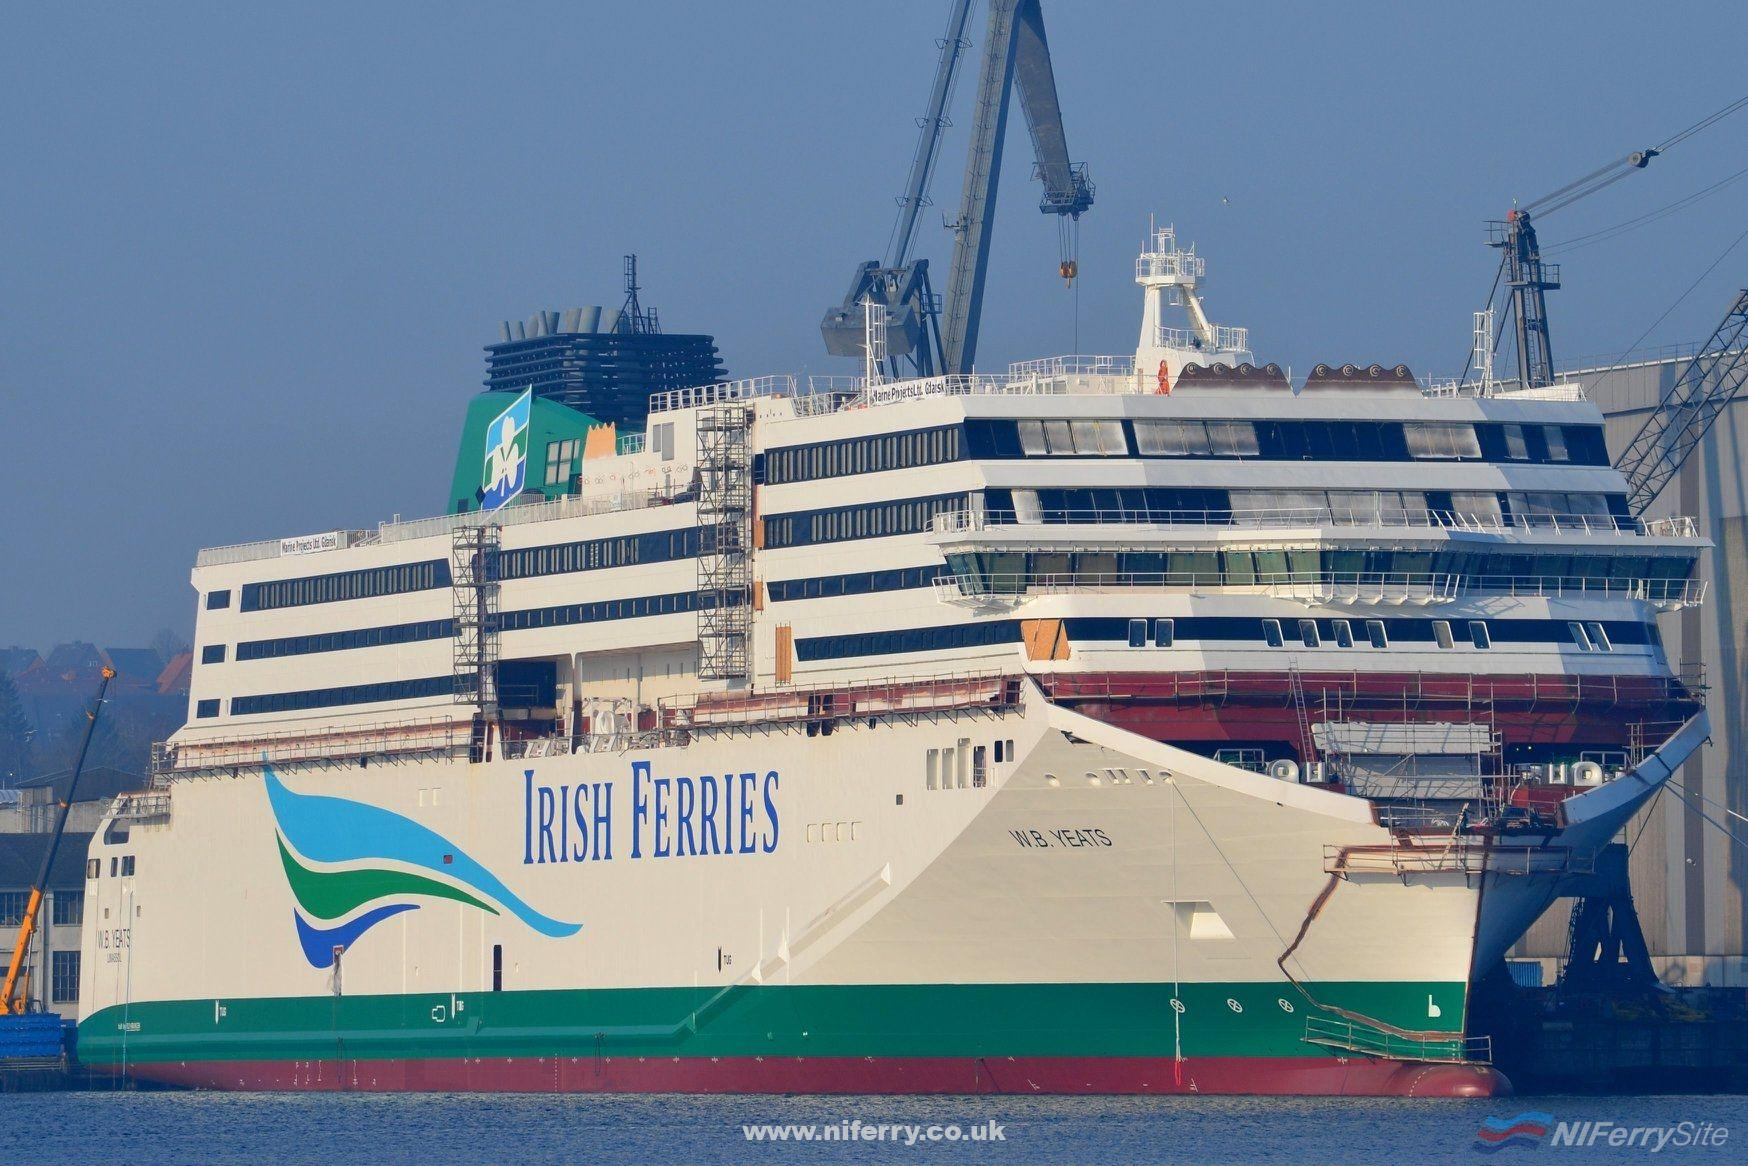 Irish Ferries W.B. Yeats shown under construction at the Flensburger shipyard on 9th February 2018. The previous day the aft section was lifted into place completing the lift of the superstructure onto the hull. Copyright © Frank Jensen.